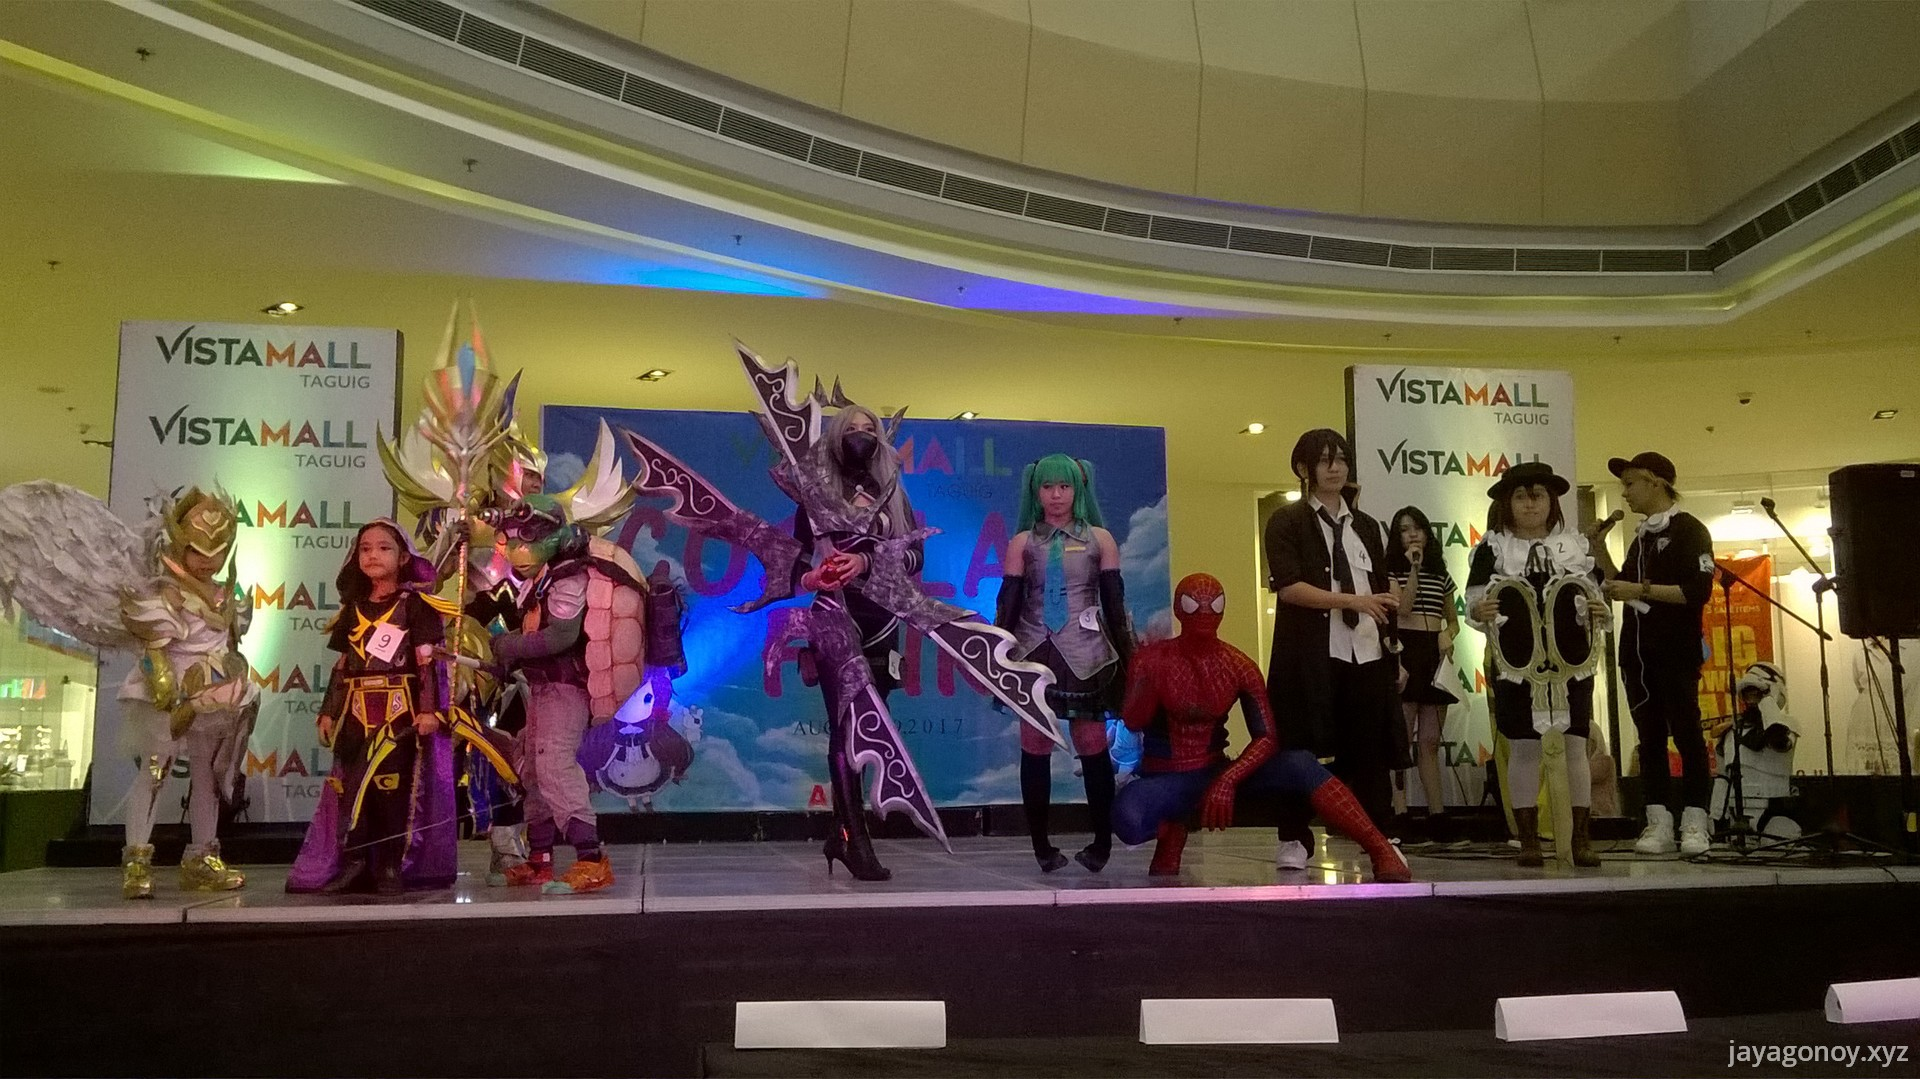 Cosplay Fair at Vista Mall Taguig